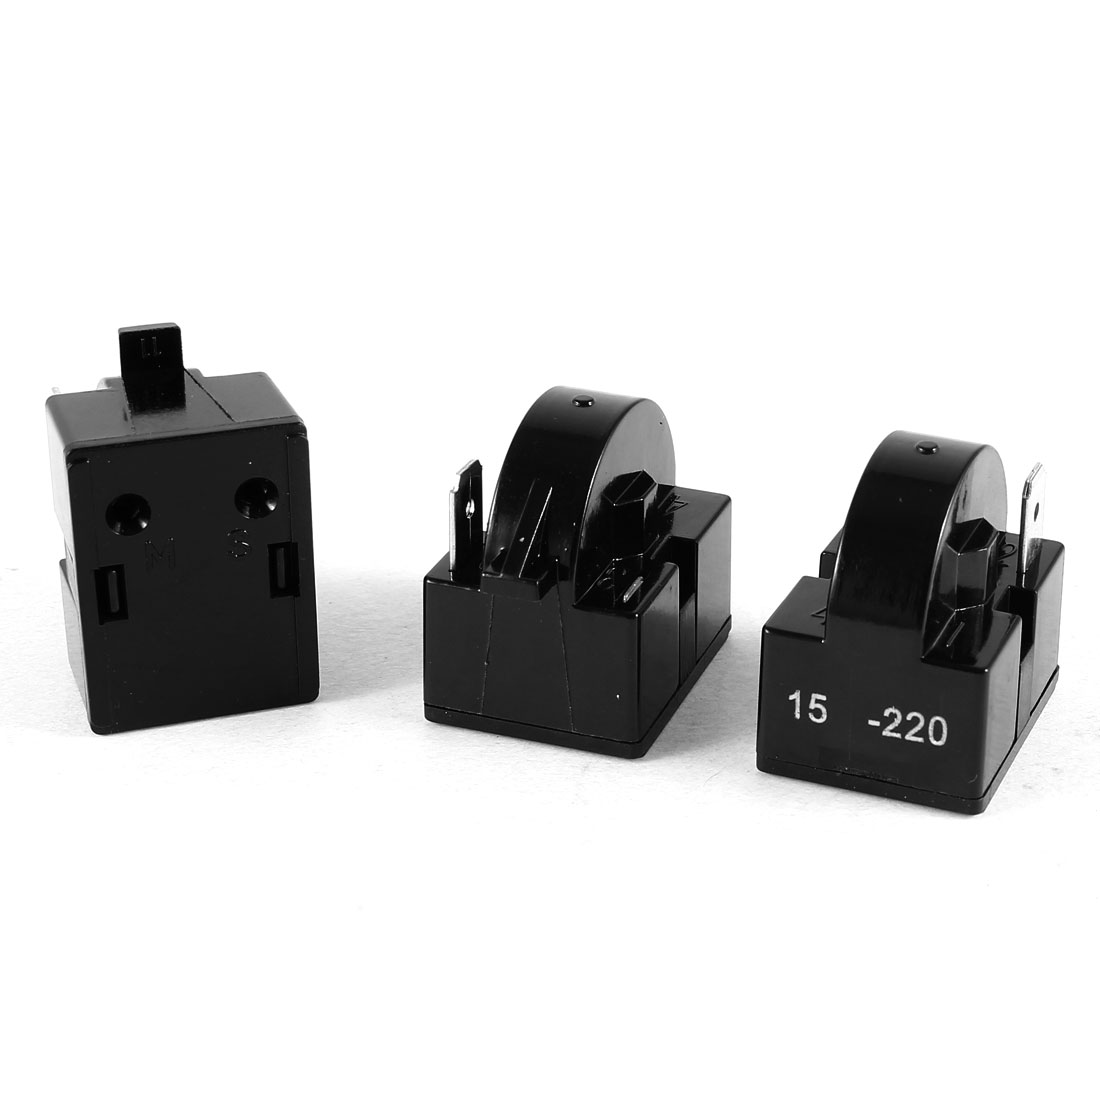 3 Pcs Black Plastic Housing 15 Ohm One Pin PTC Starter Relay for Refrigerator